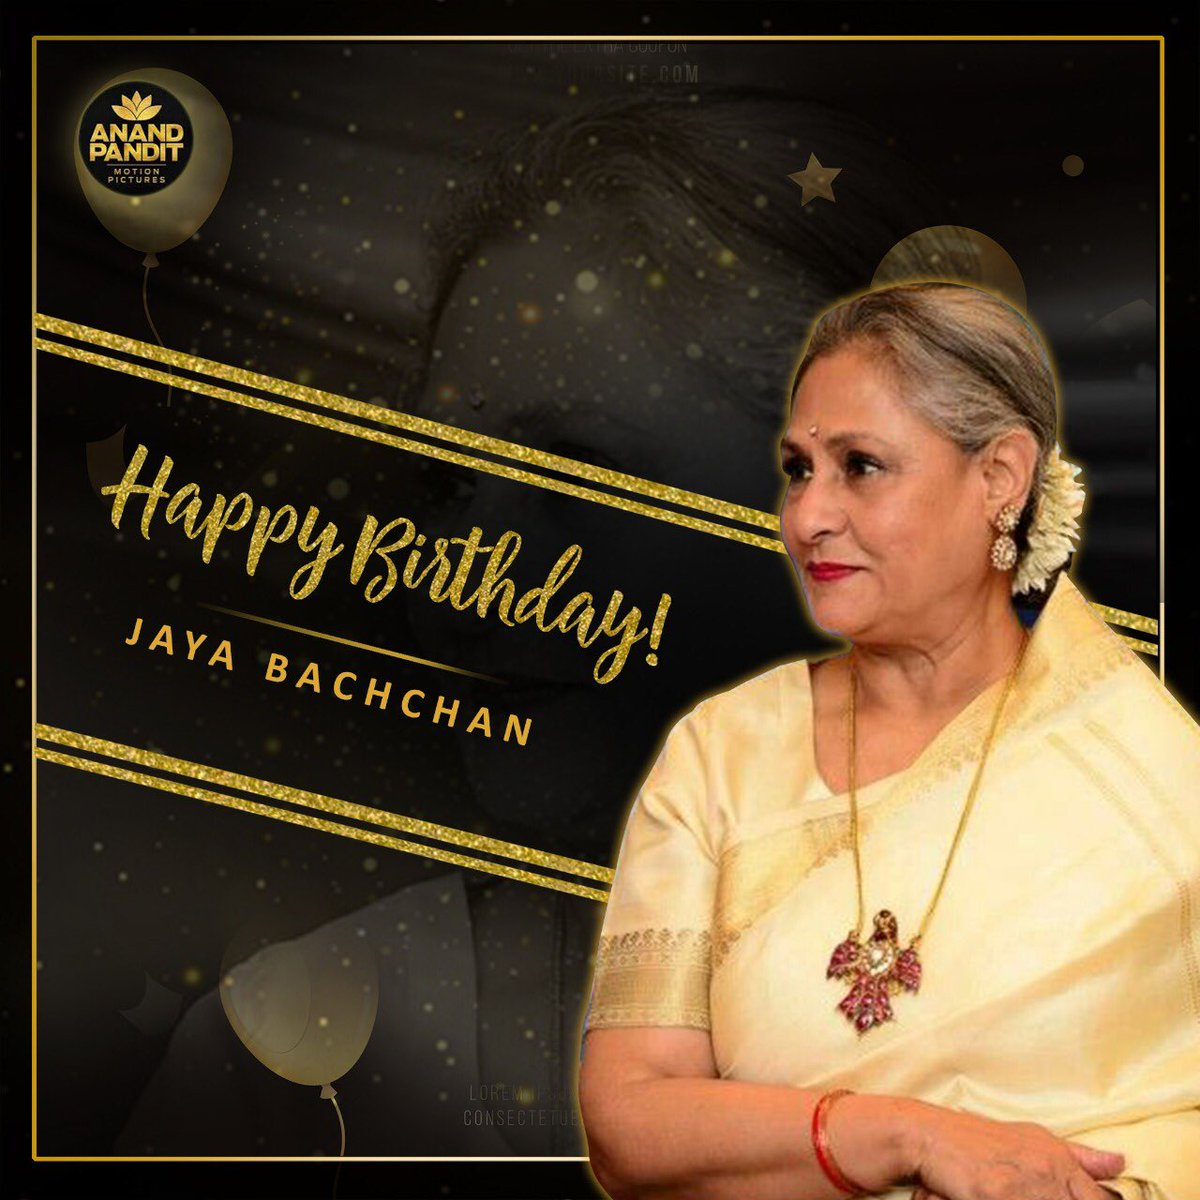 Birthday wishes to one of the most talented, acclaimed and famed actress #JayaBachchan ,  Happy Birthday!!! #HappyBirthdayJayaBachchan https://t.co/lYAfc5HGIC